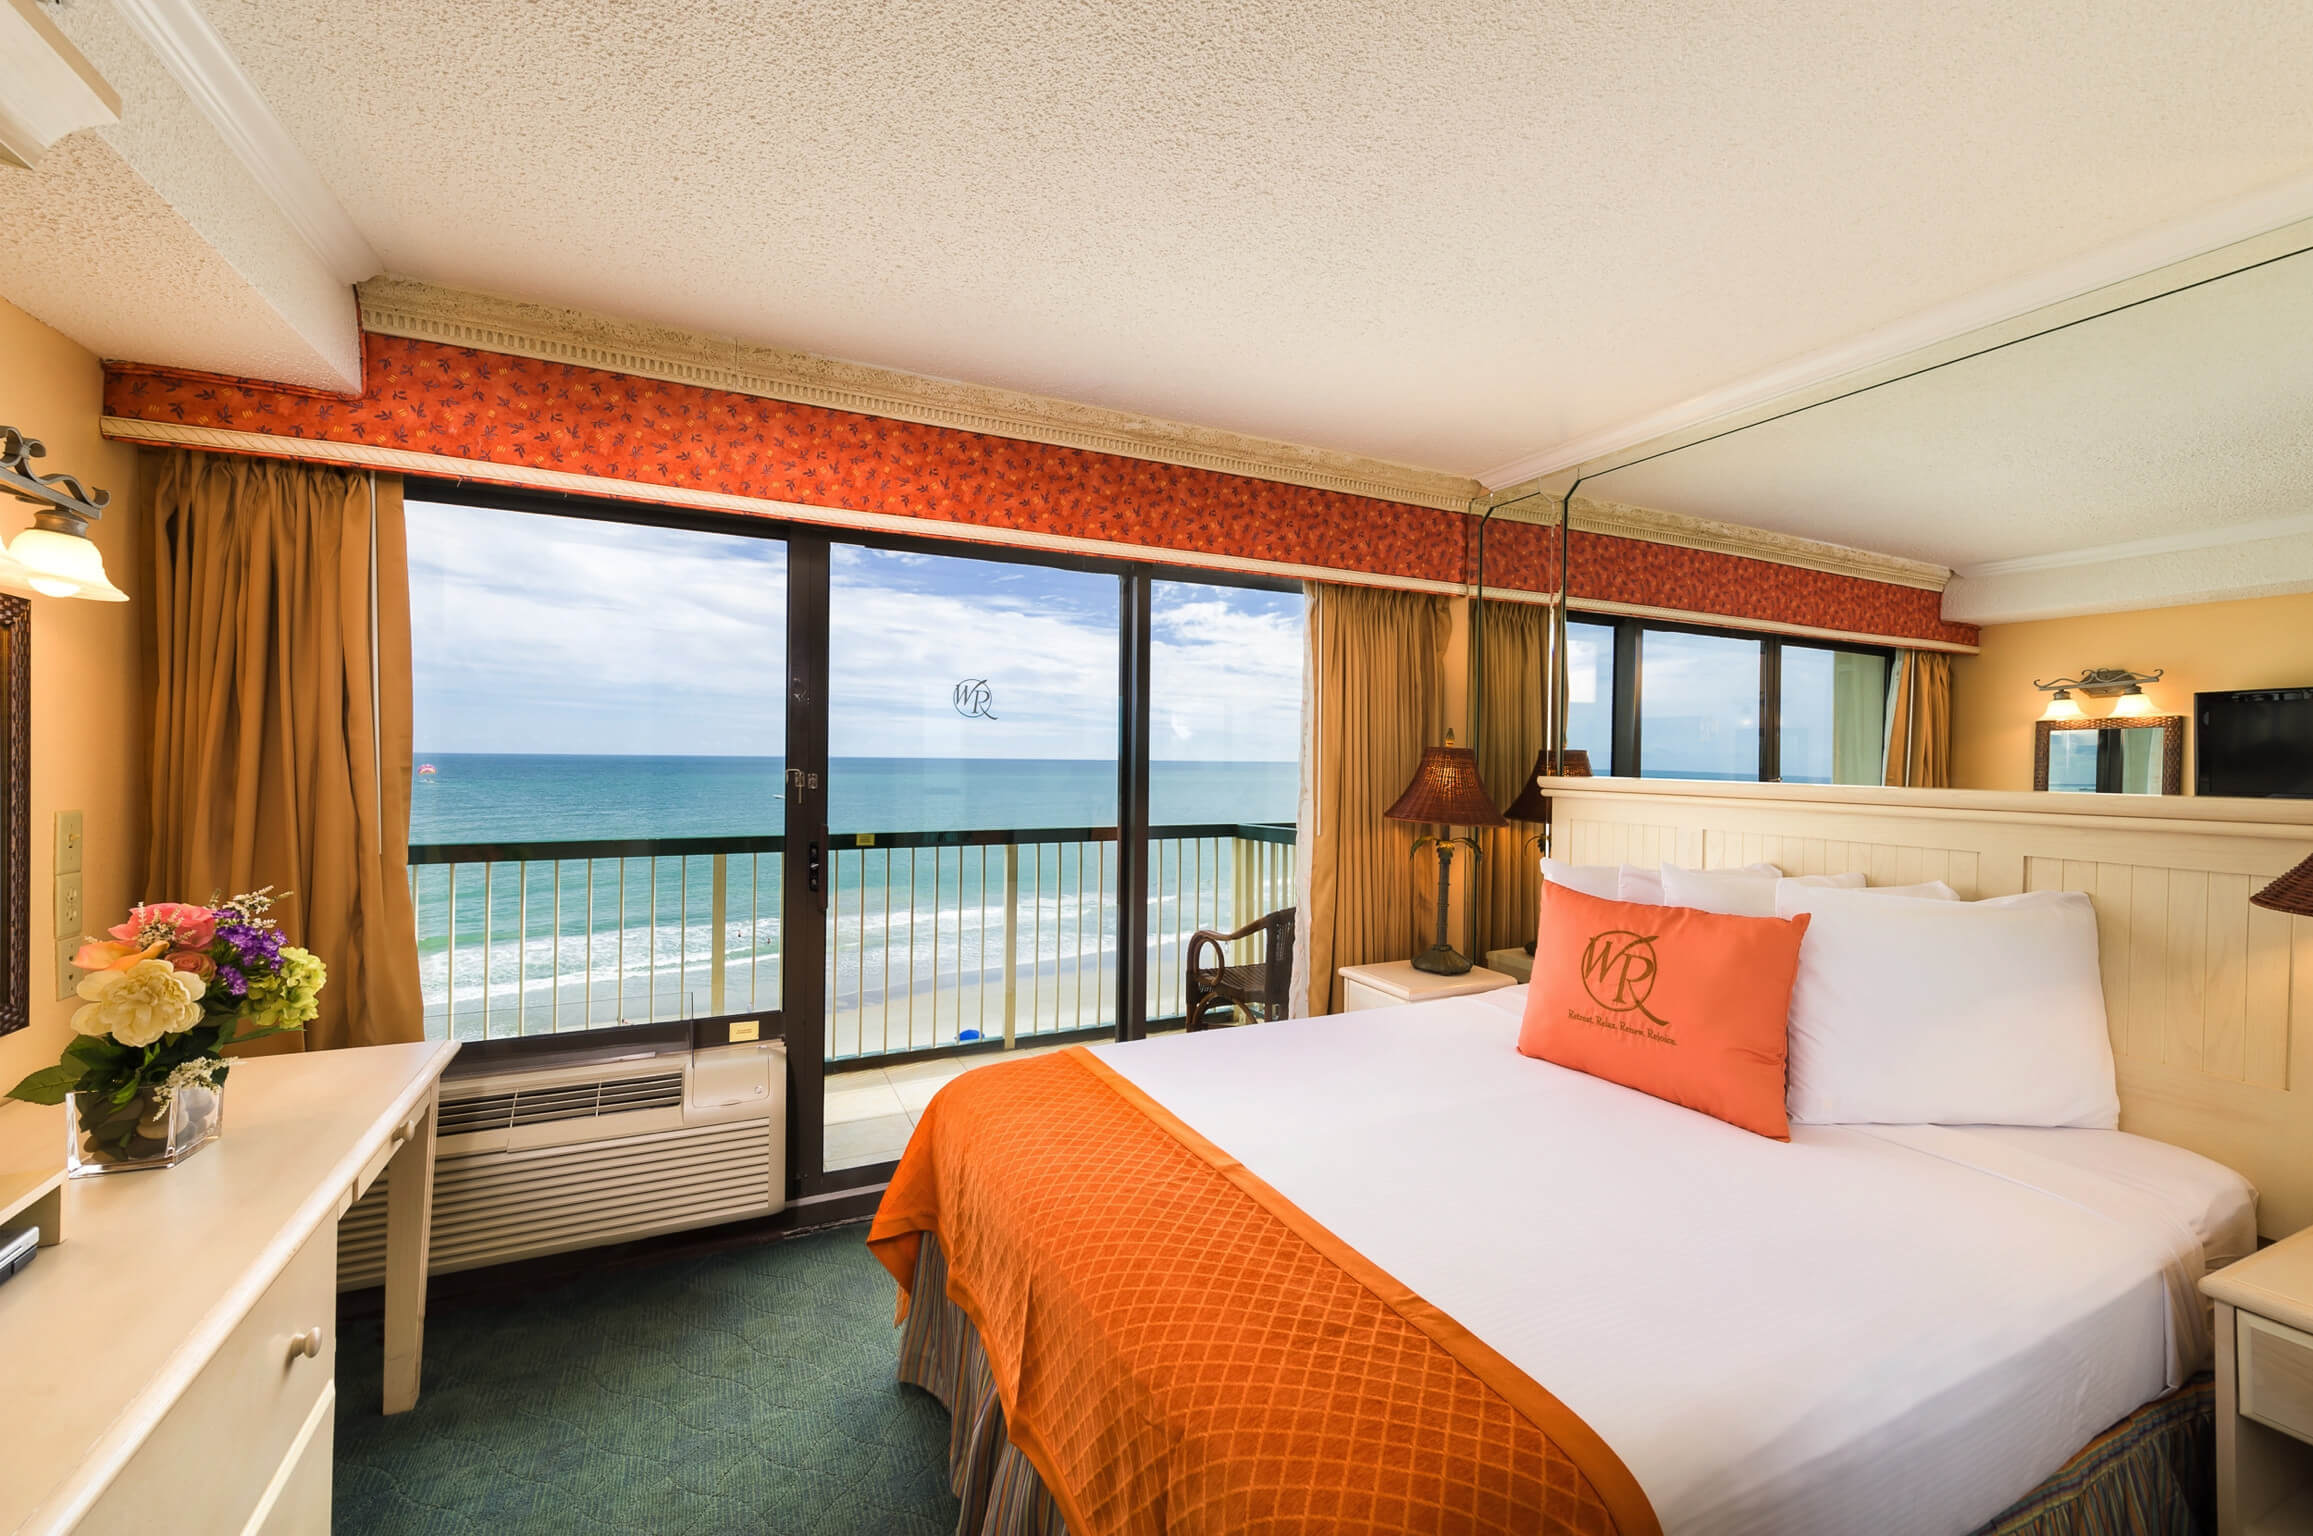 hotels in myrtle beach sc westgate myrtle beach accommodations